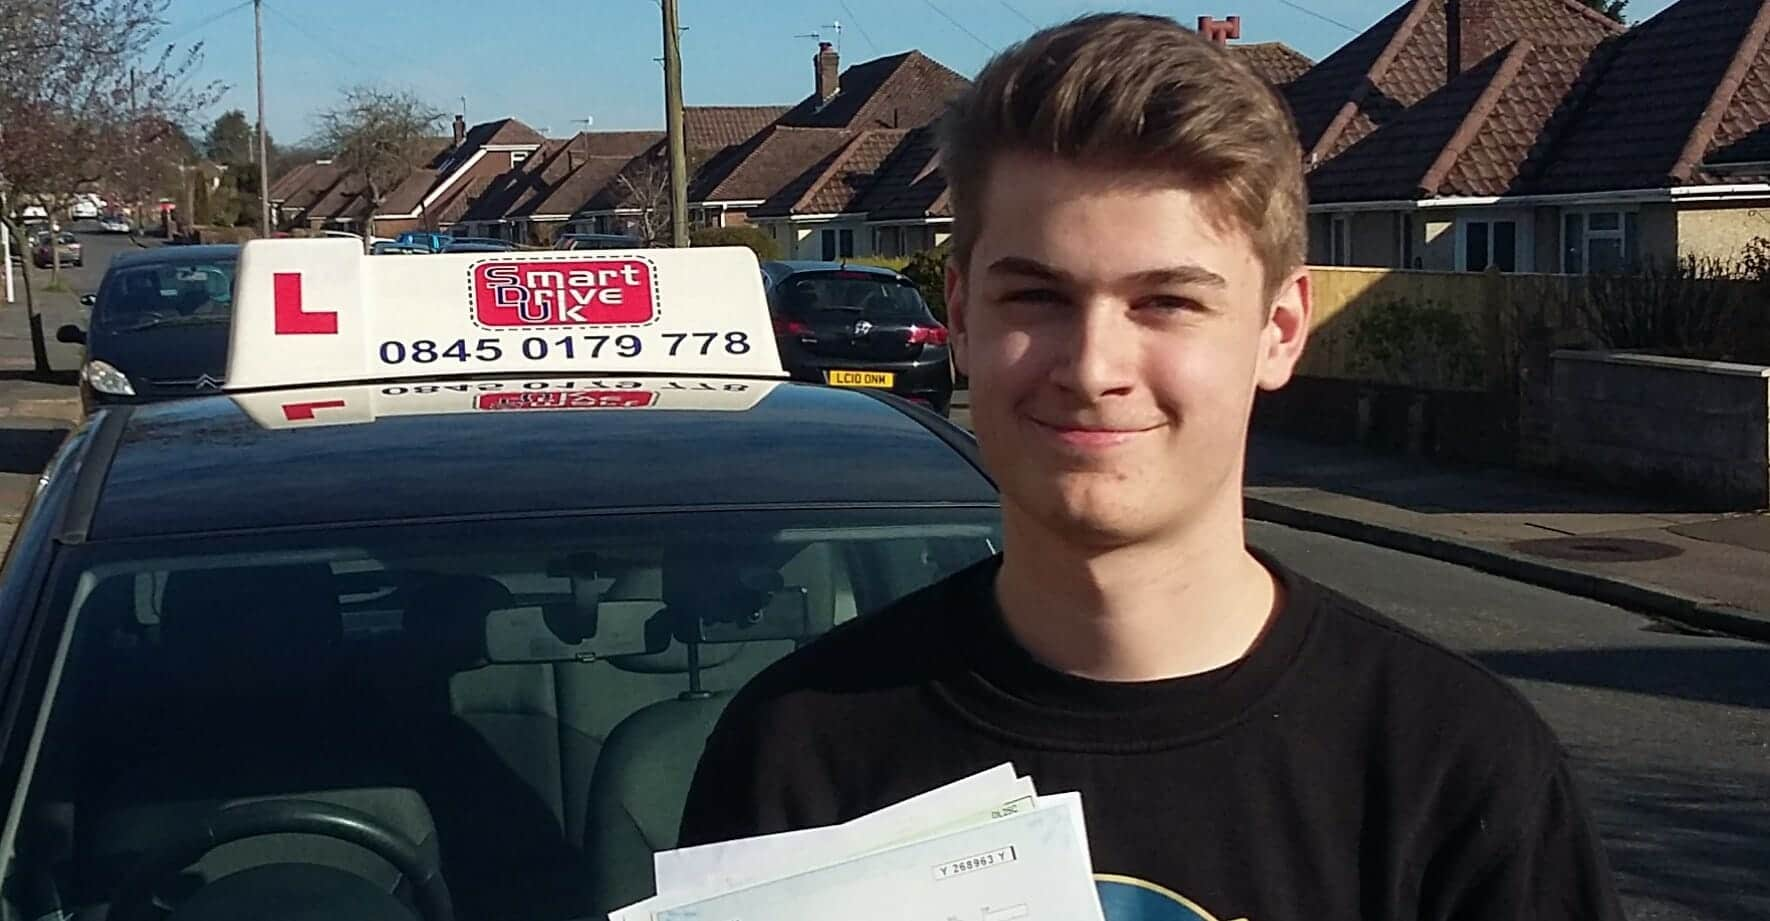 Congratulations to Luke Howard from Worthing